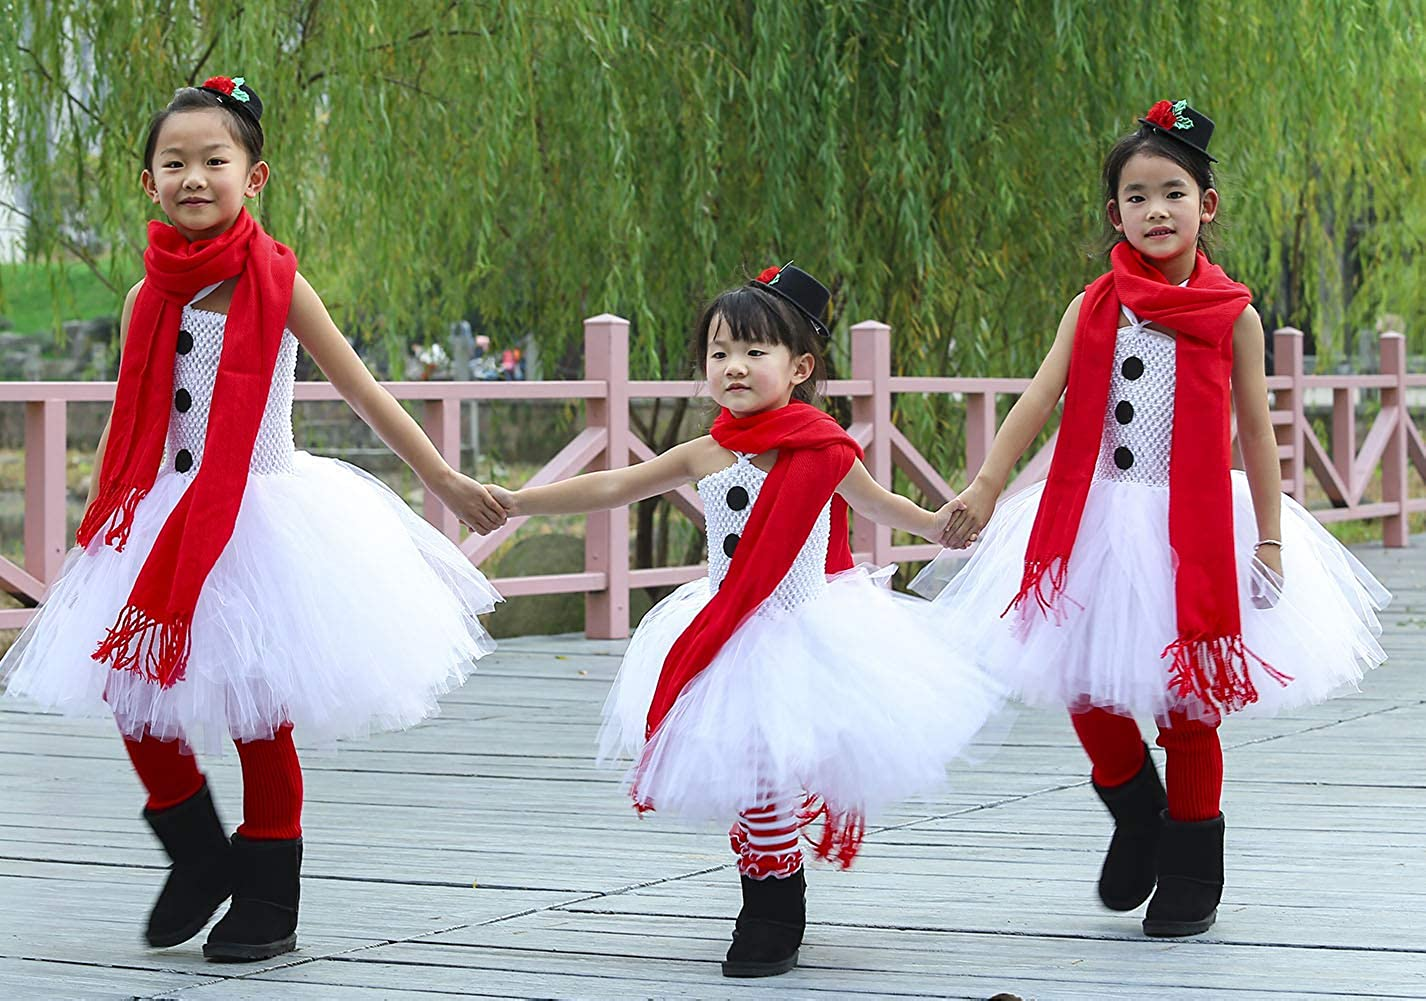 Winter Party Snowman Outfit Winter Birthday Winter Wonderland Cute Snowman Double Ribbon Trim Tutu Outfit